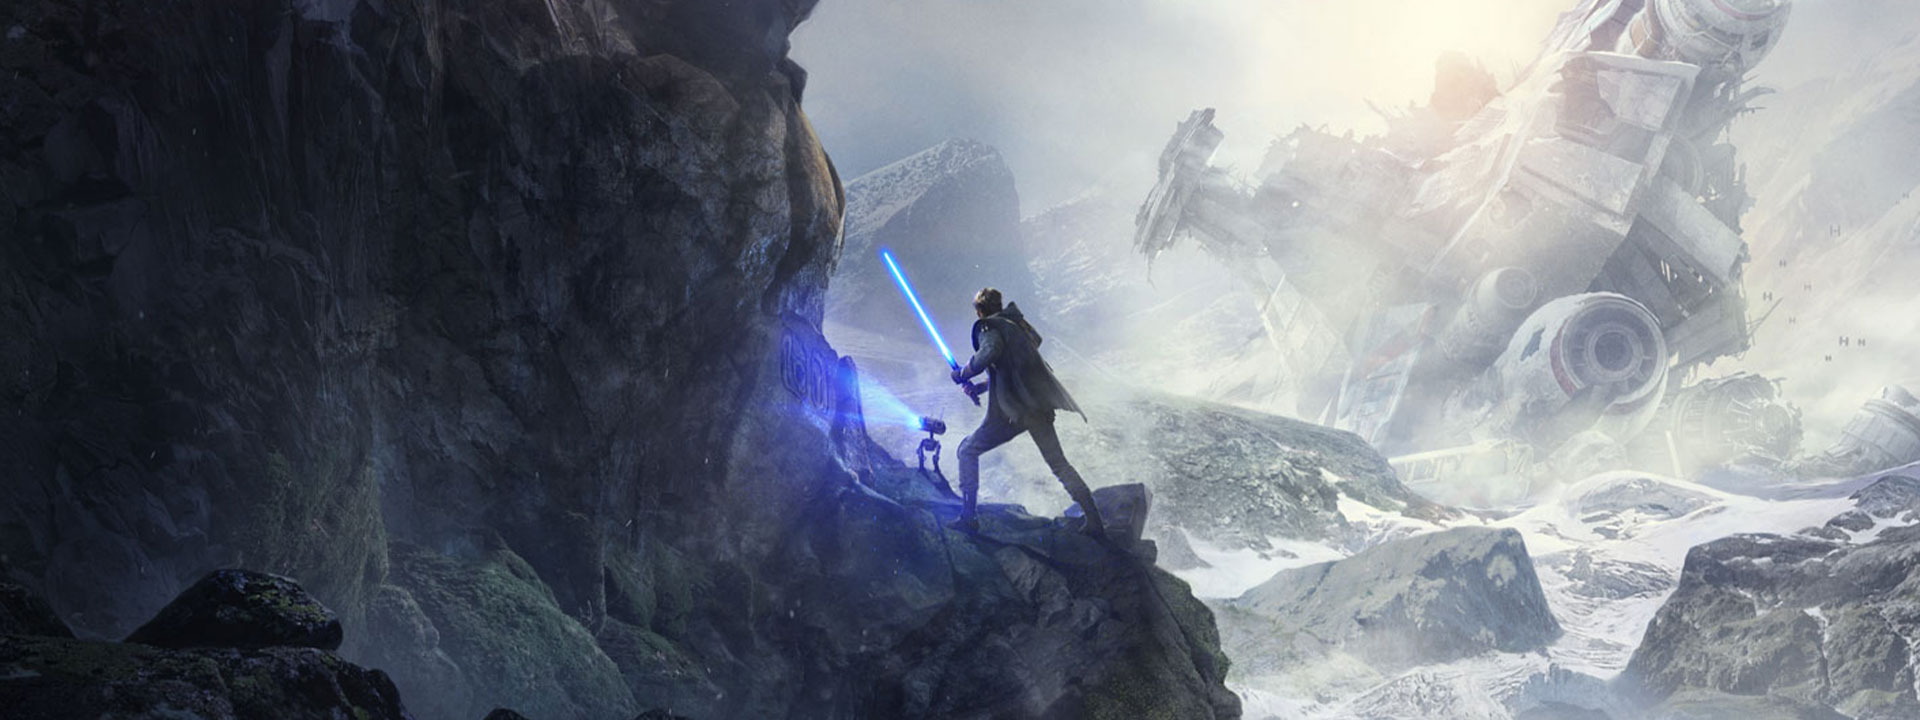 A man holds a lightsaber on a cliff as a bot scans symbols on the cliffside